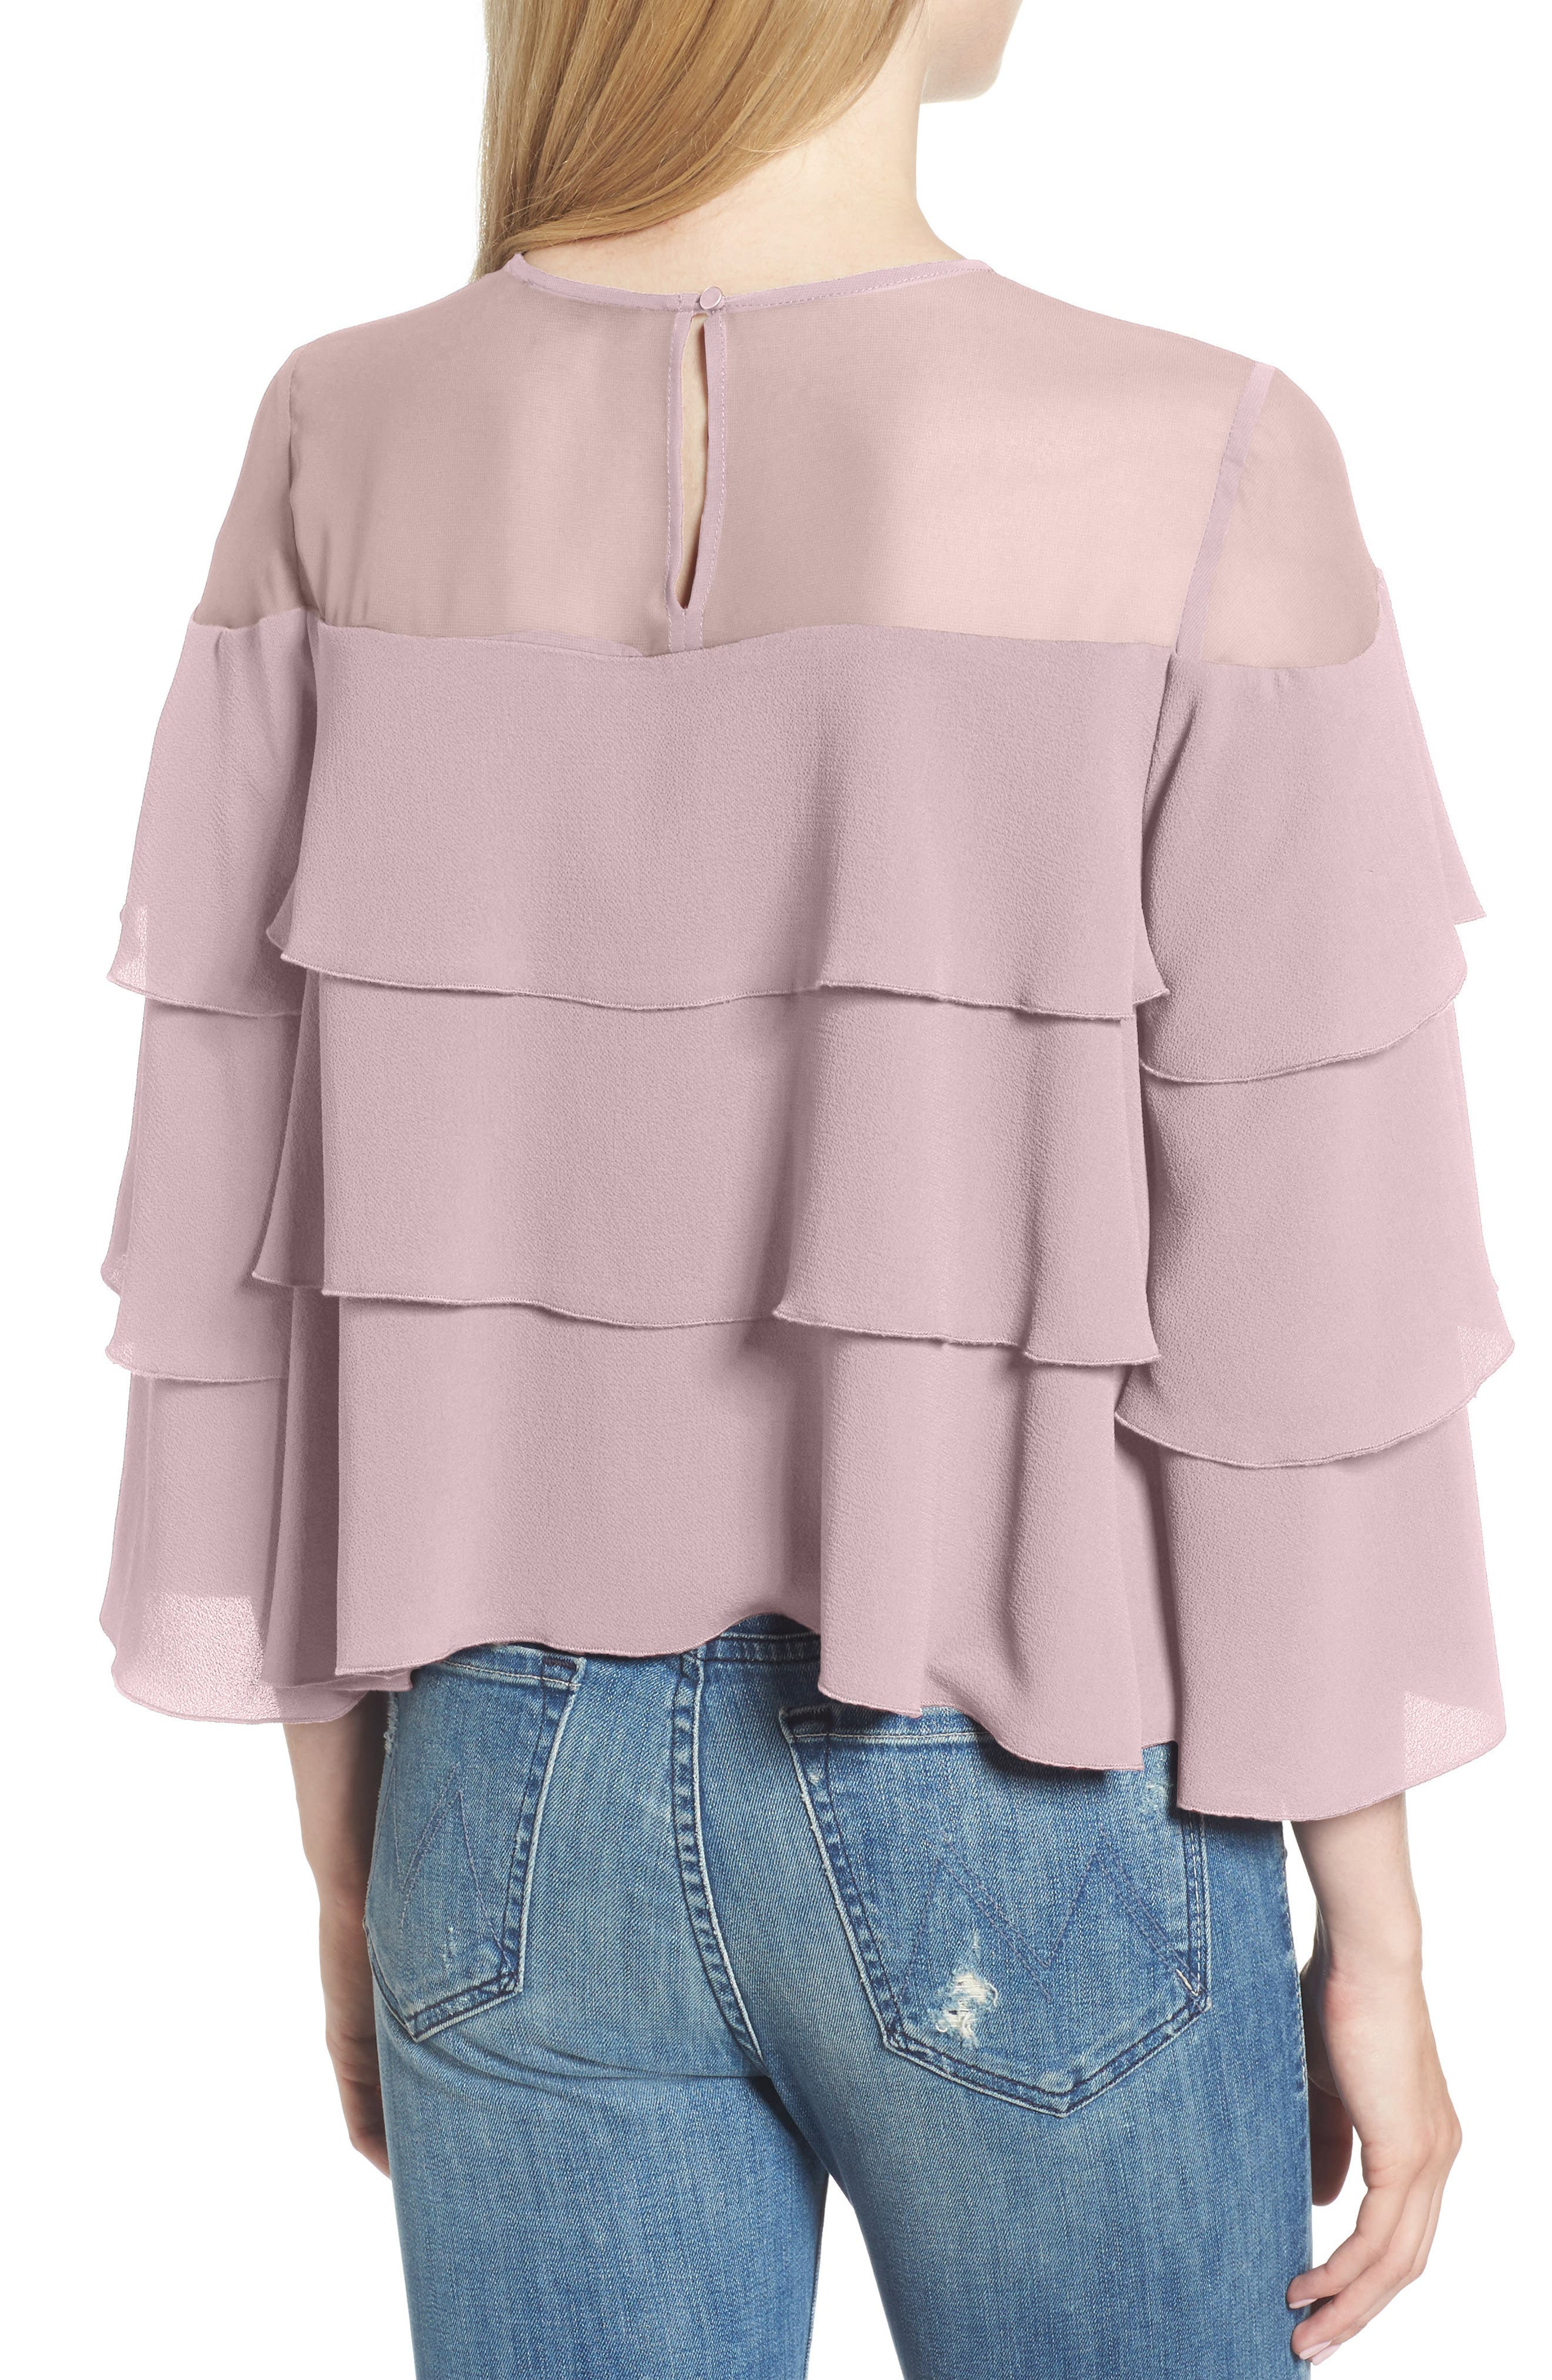 Medena Tiered Ruffle Top,                             Alternate thumbnail 2, color,                             Pale Lavender